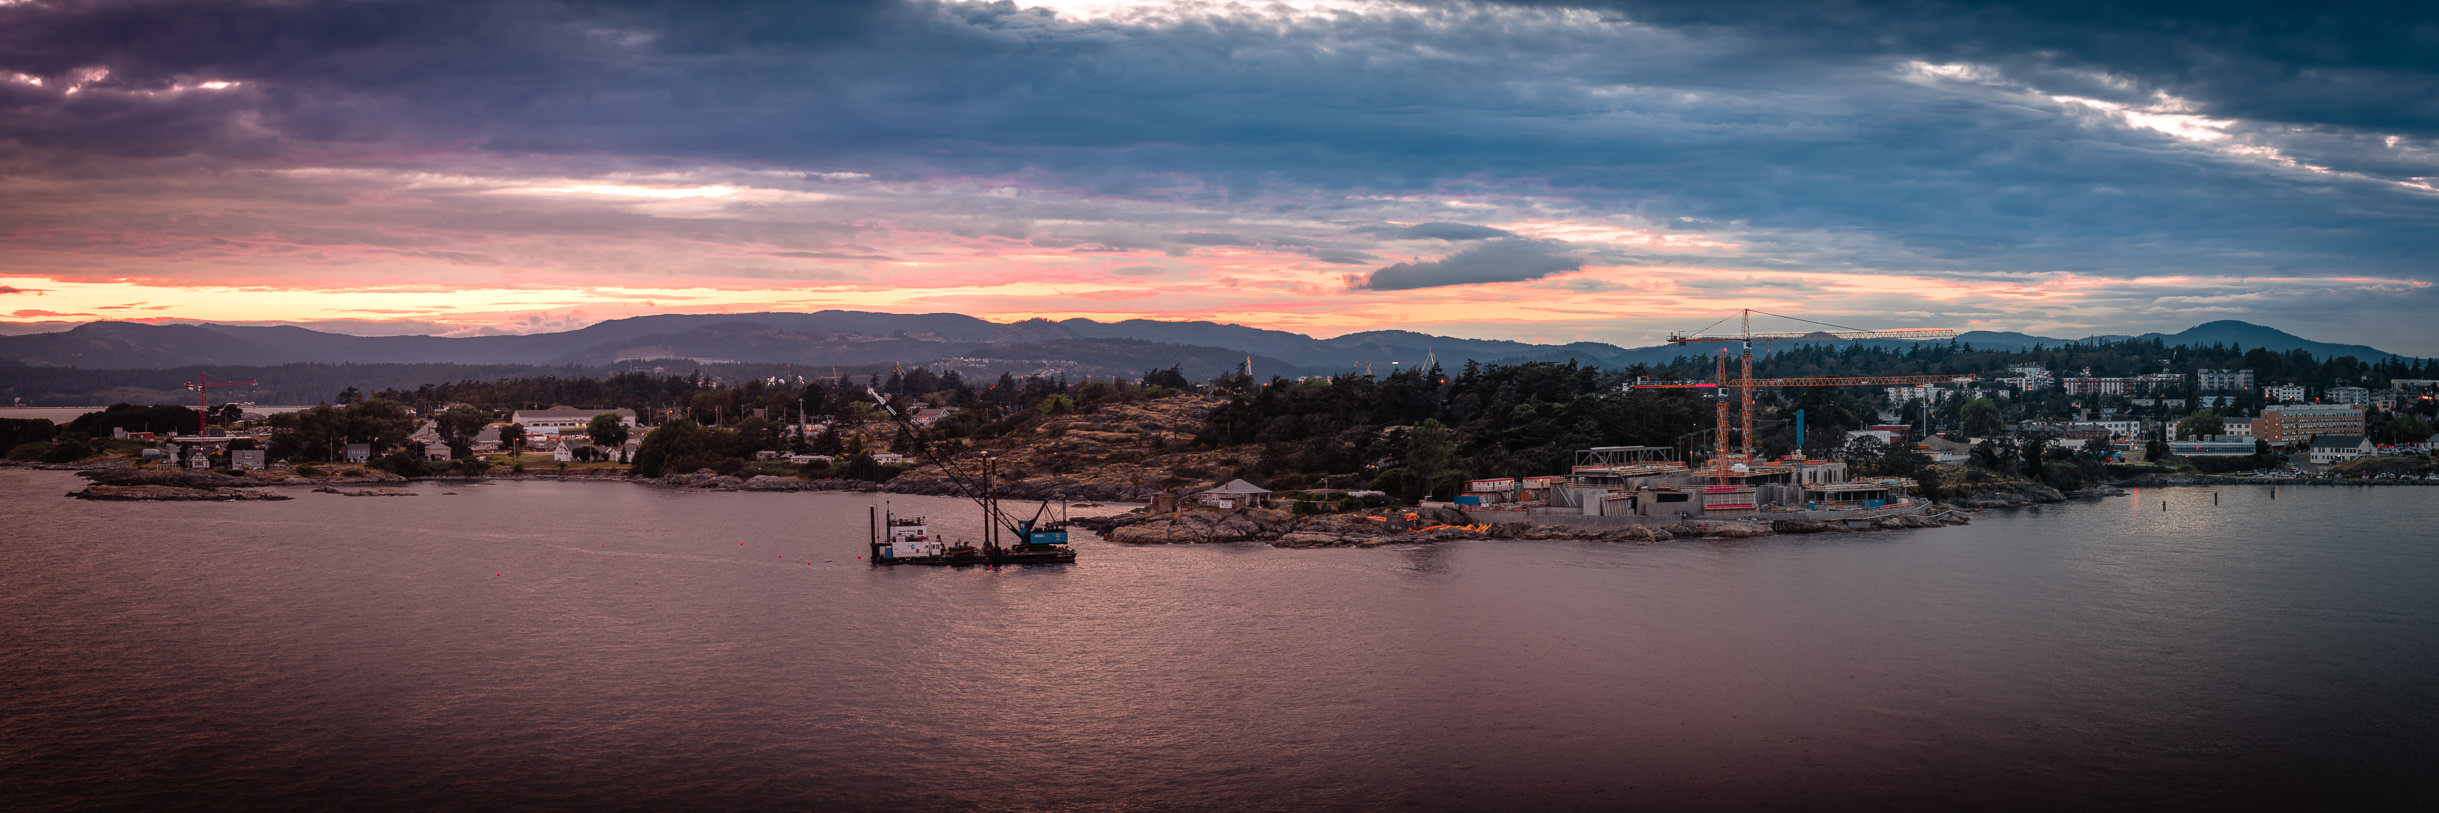 The sun sets on the West Bay district of Victoria, British Columbia.